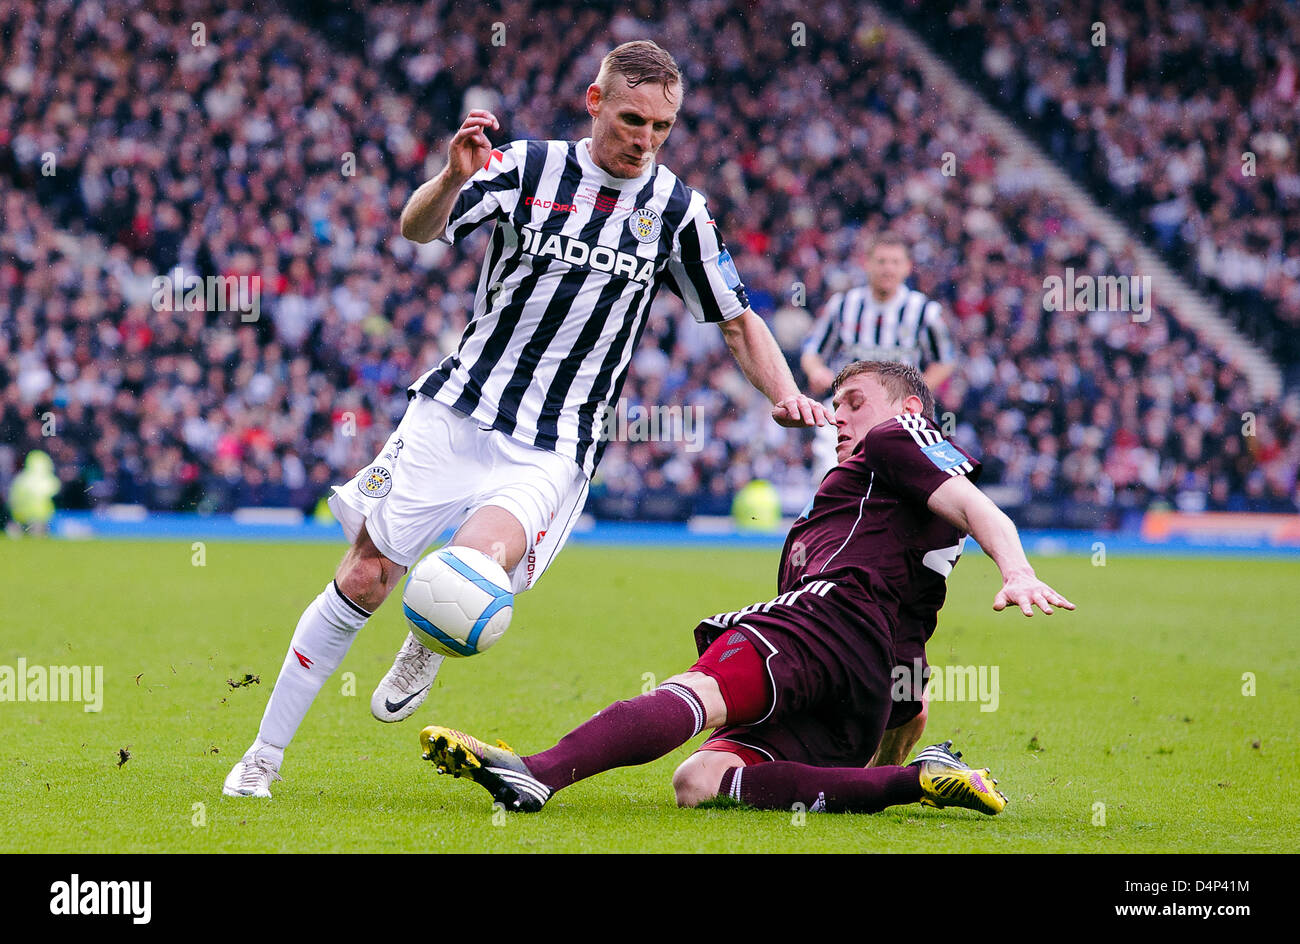 Glasgow, Scotland, UK. Sunday 17th March 2013. Gary Teale skips past Kevin McHattie during the Scottish Communities - Stock Image